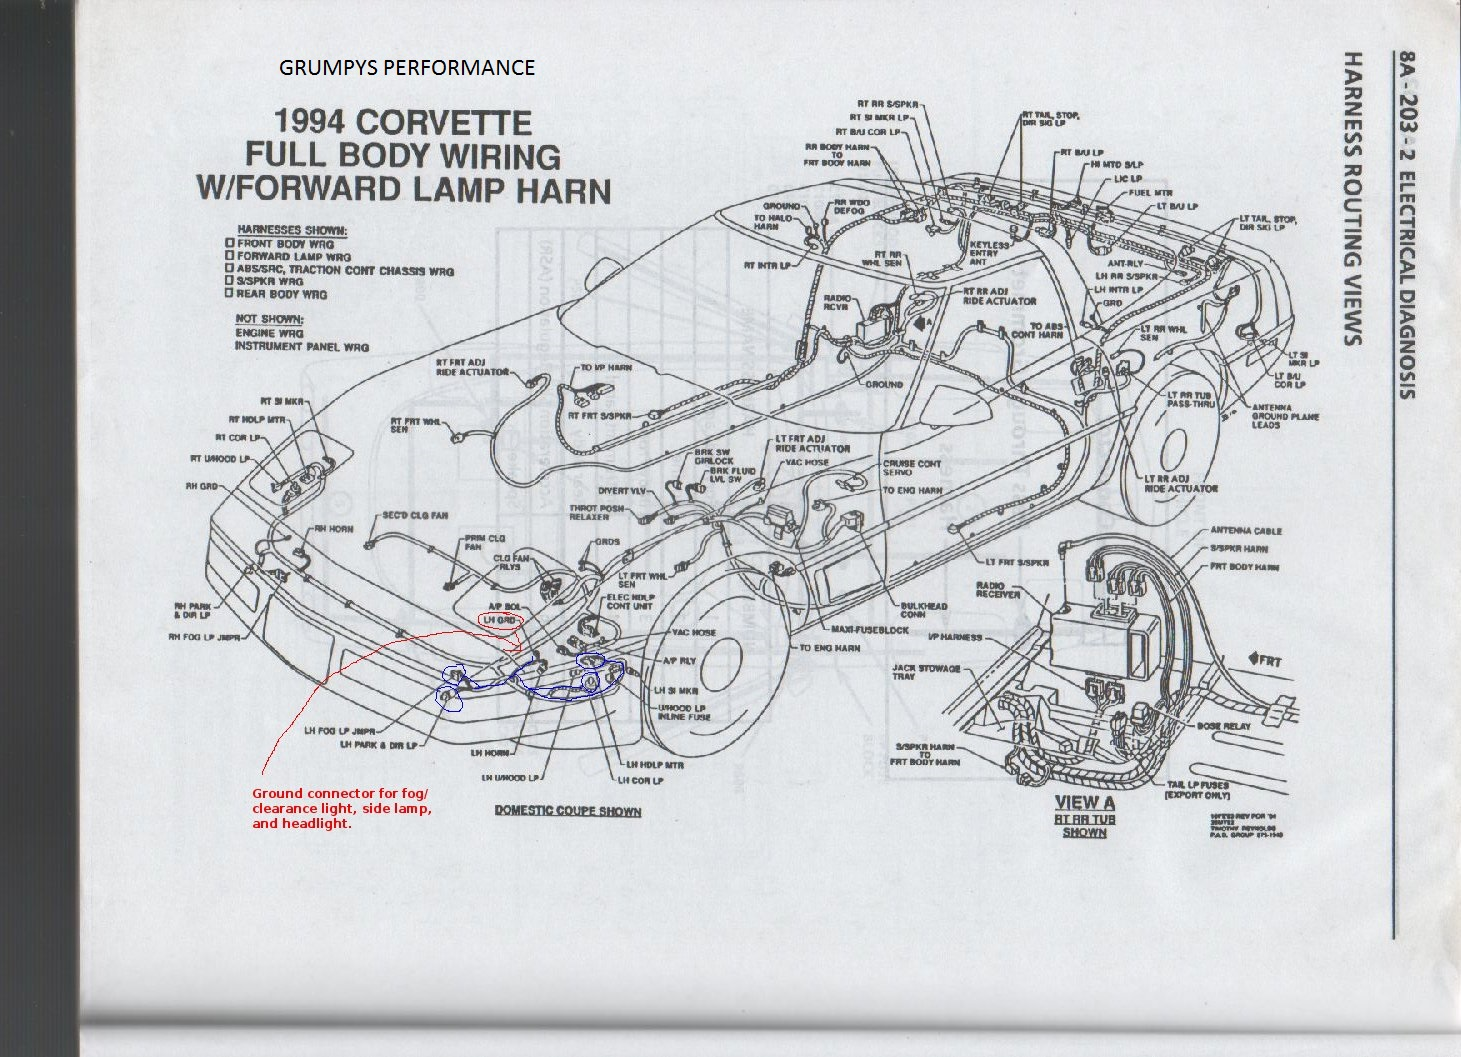 hight resolution of c4 and camaro sensor and relay switch locations and info grumpys coolant hoses 1994 corvette red 1994 corvette engine diagram